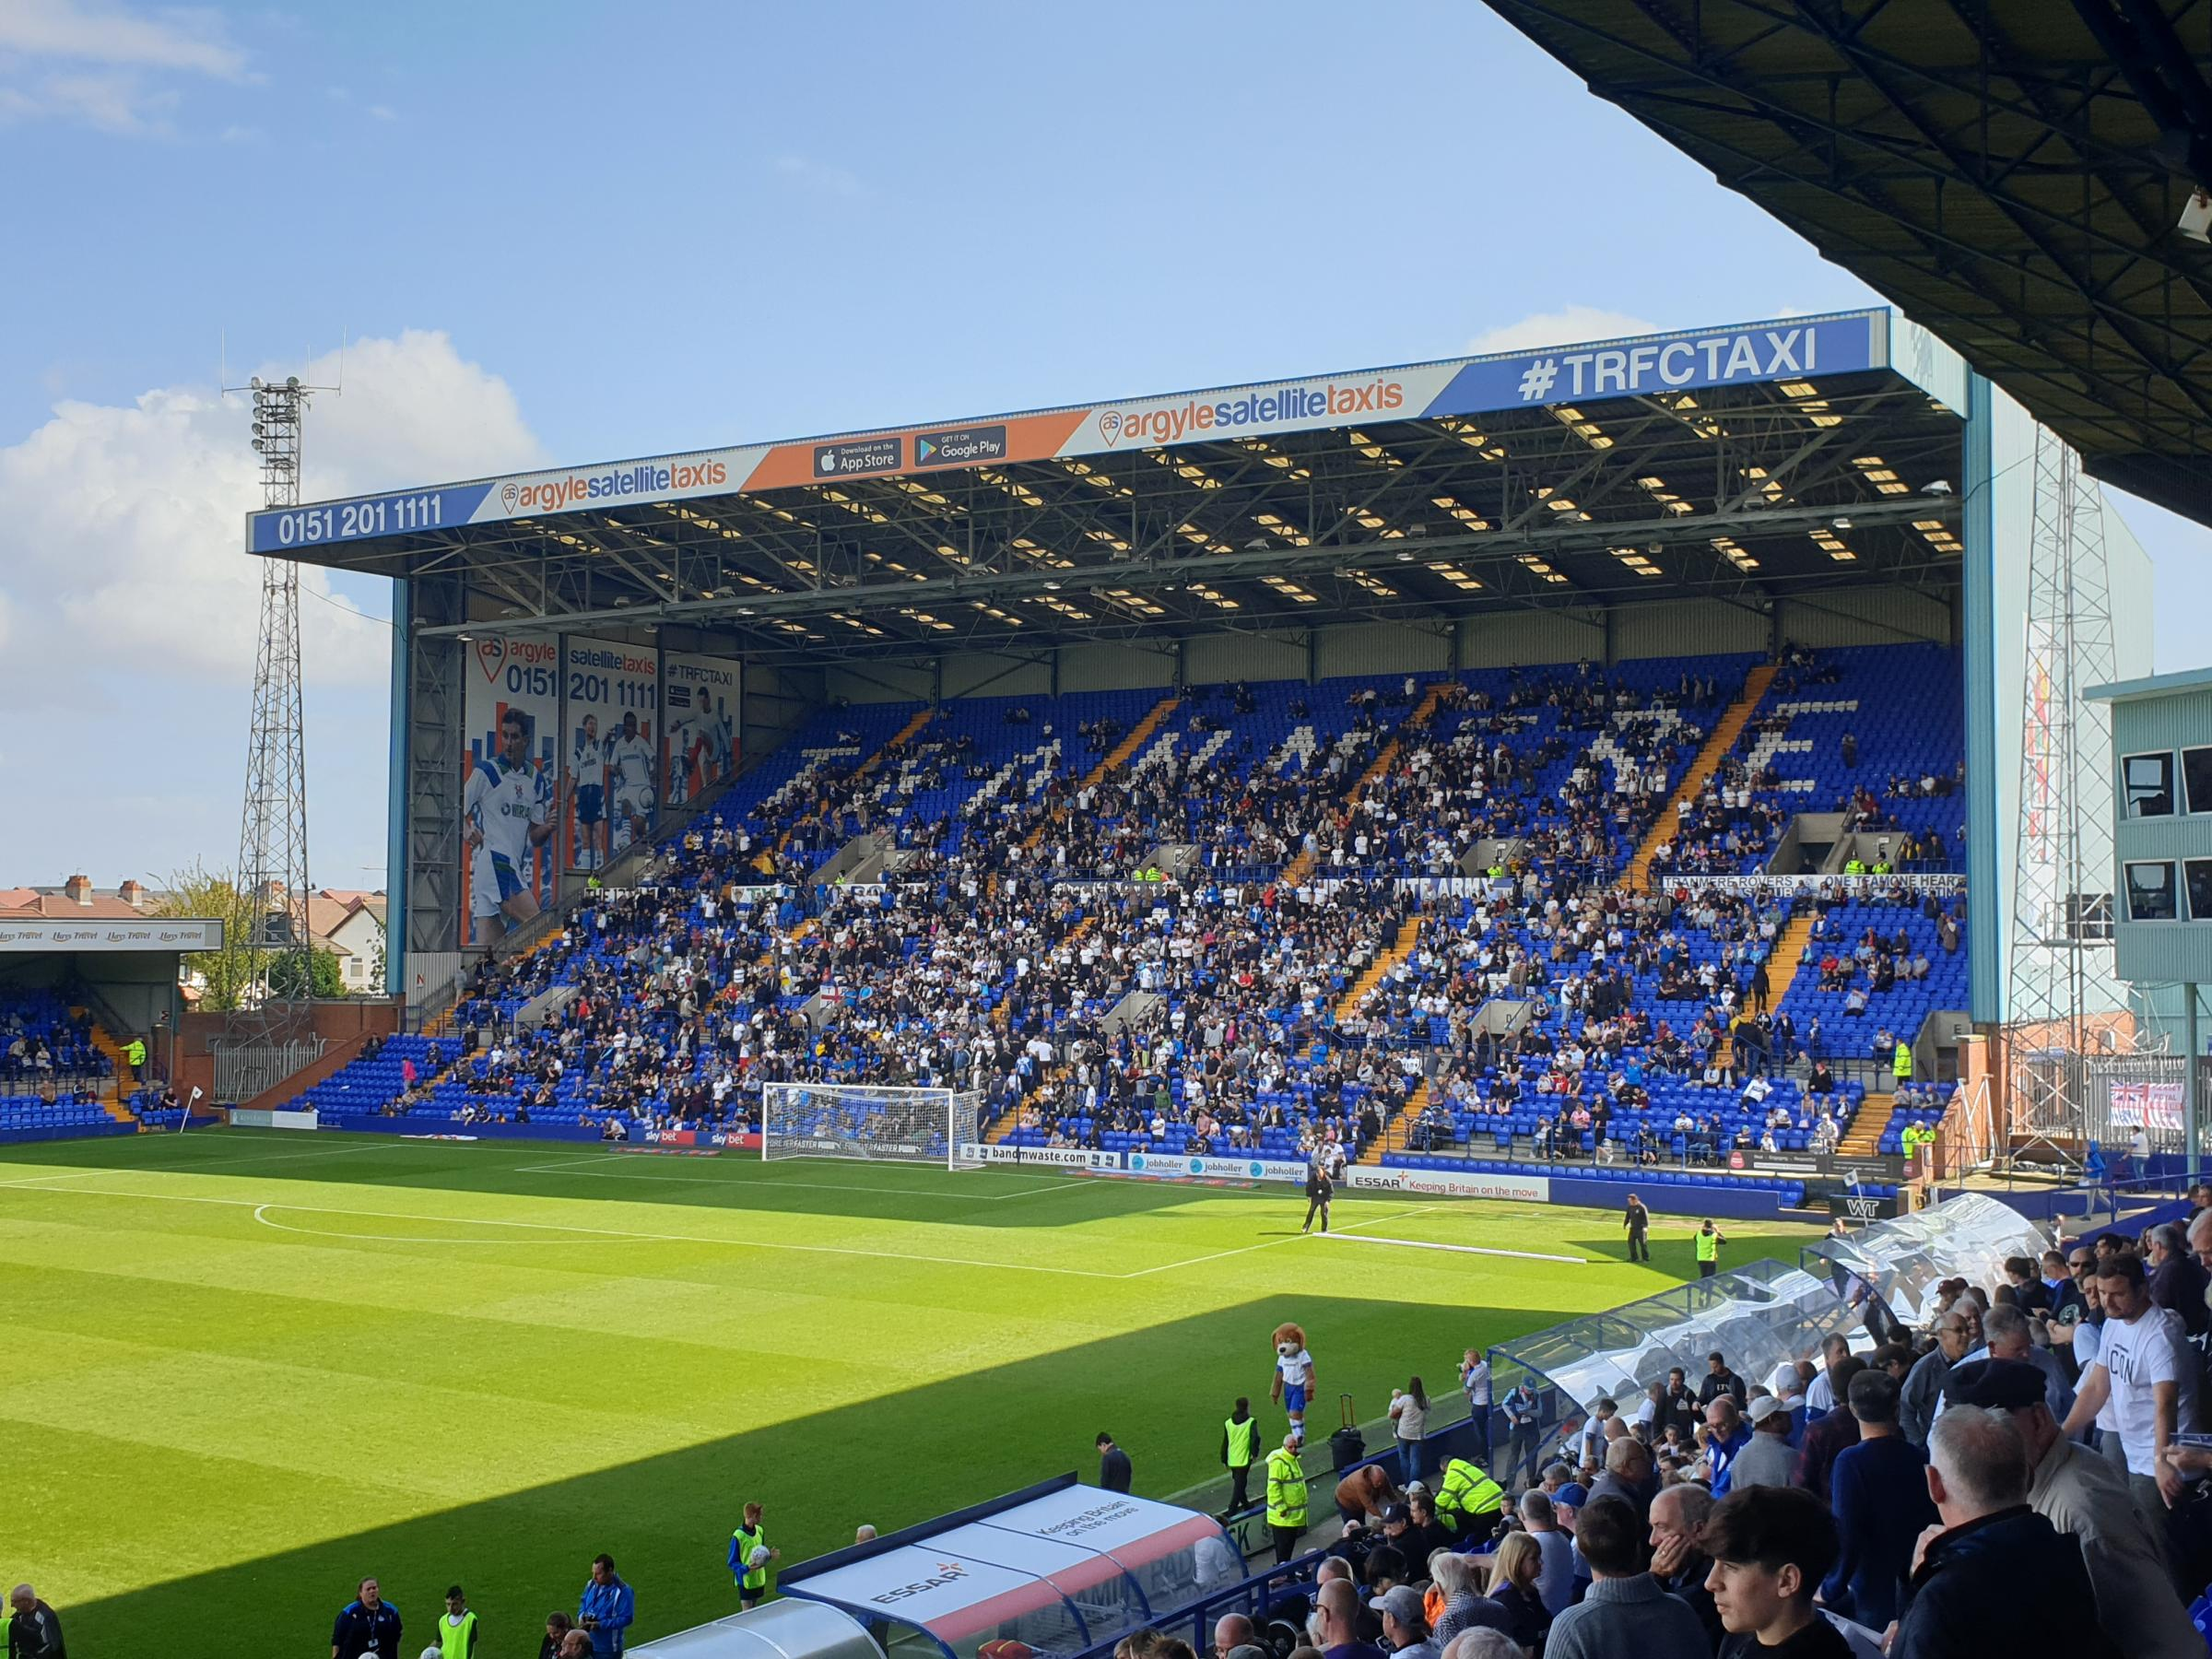 Tranmere Rovers 5-0 Bolton Wanderers - Match report